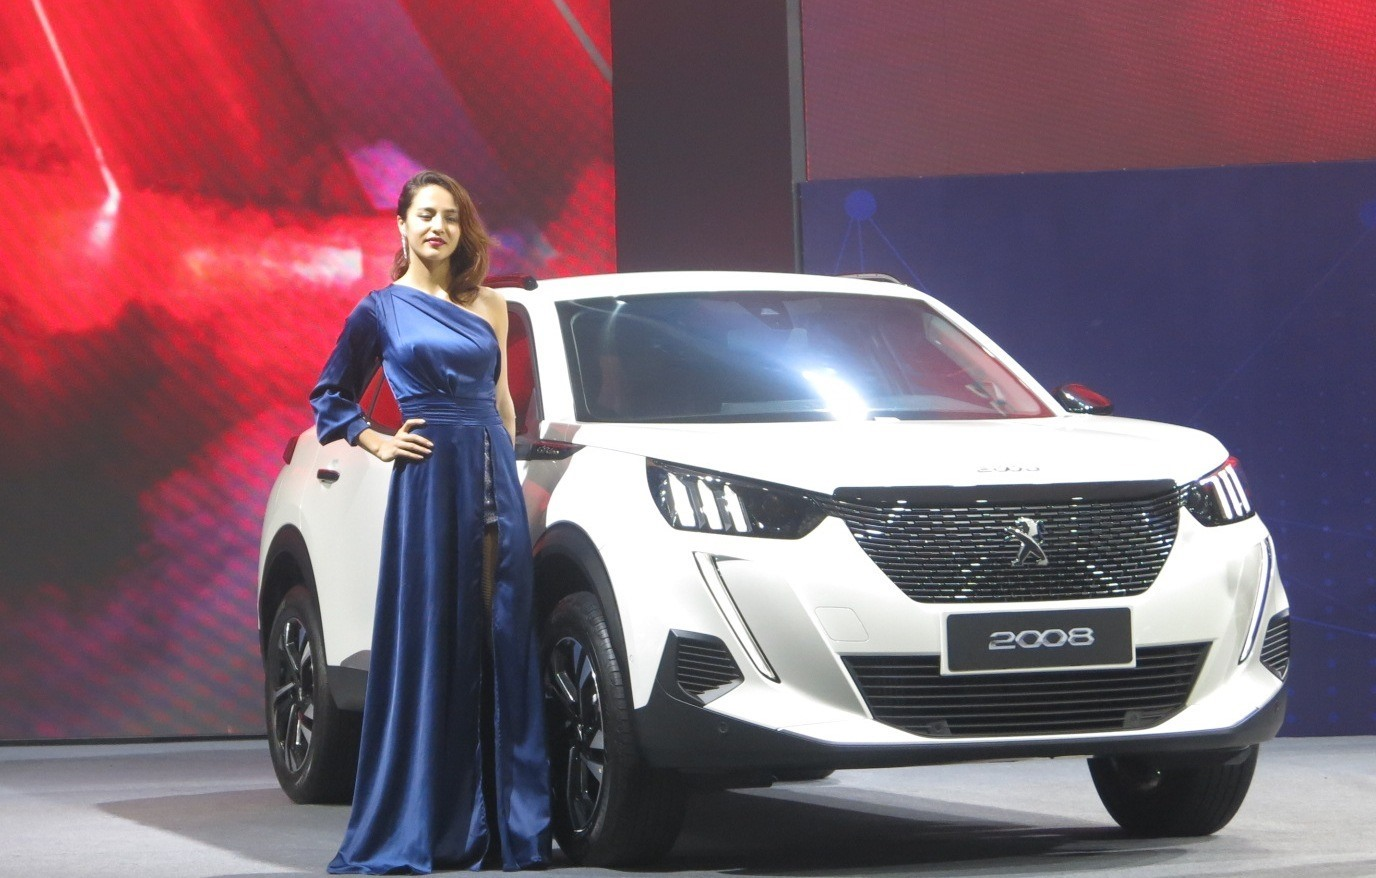 An SUV Peugeot 2008 at the event